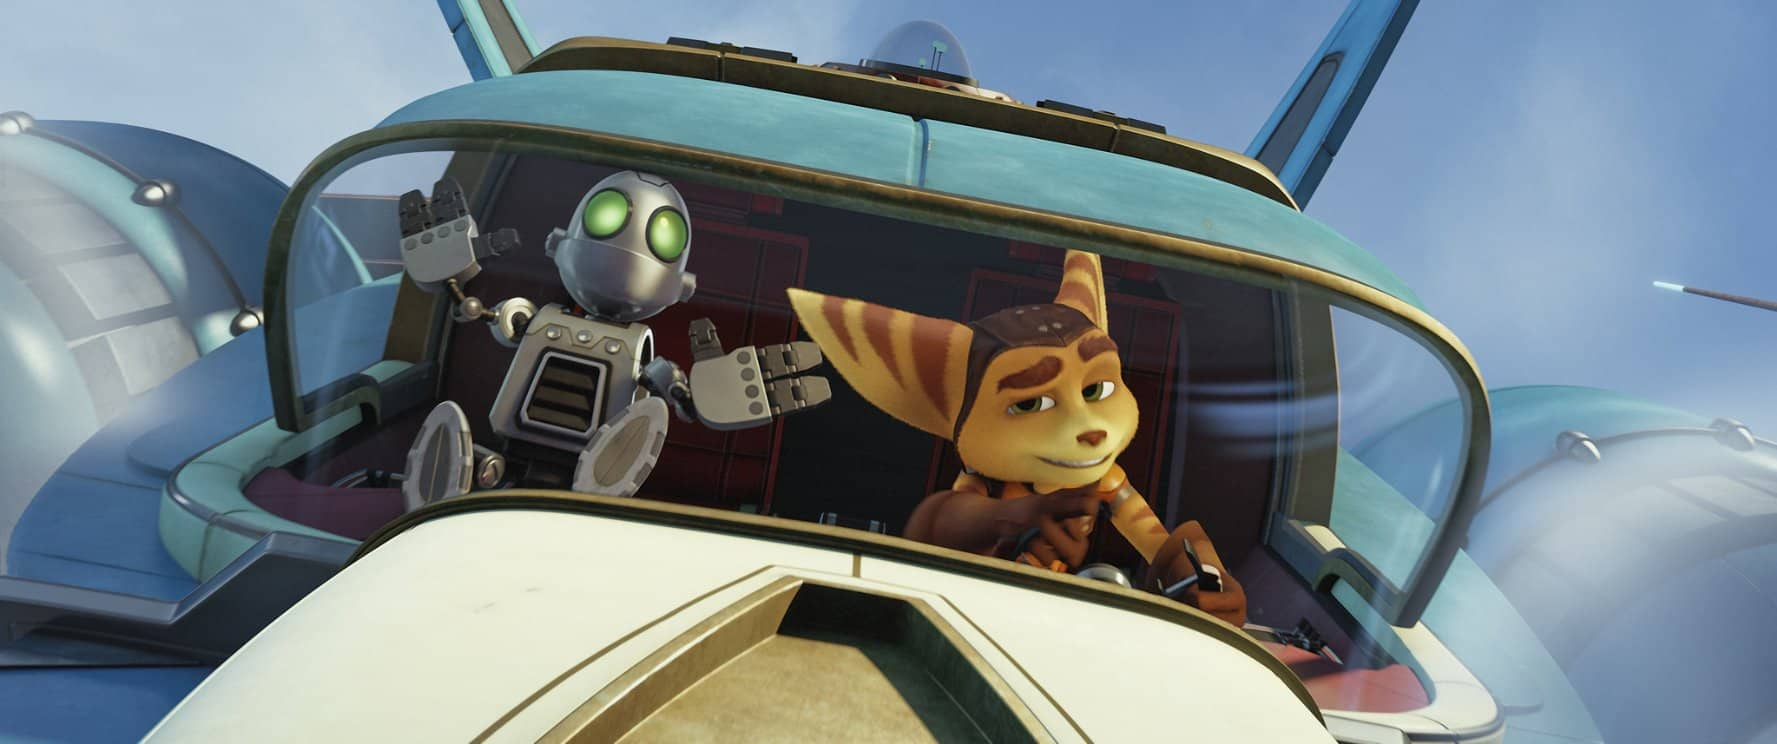 'Ratchet and Clank' the Movie, More like Ratchet and Zzzzzzzz